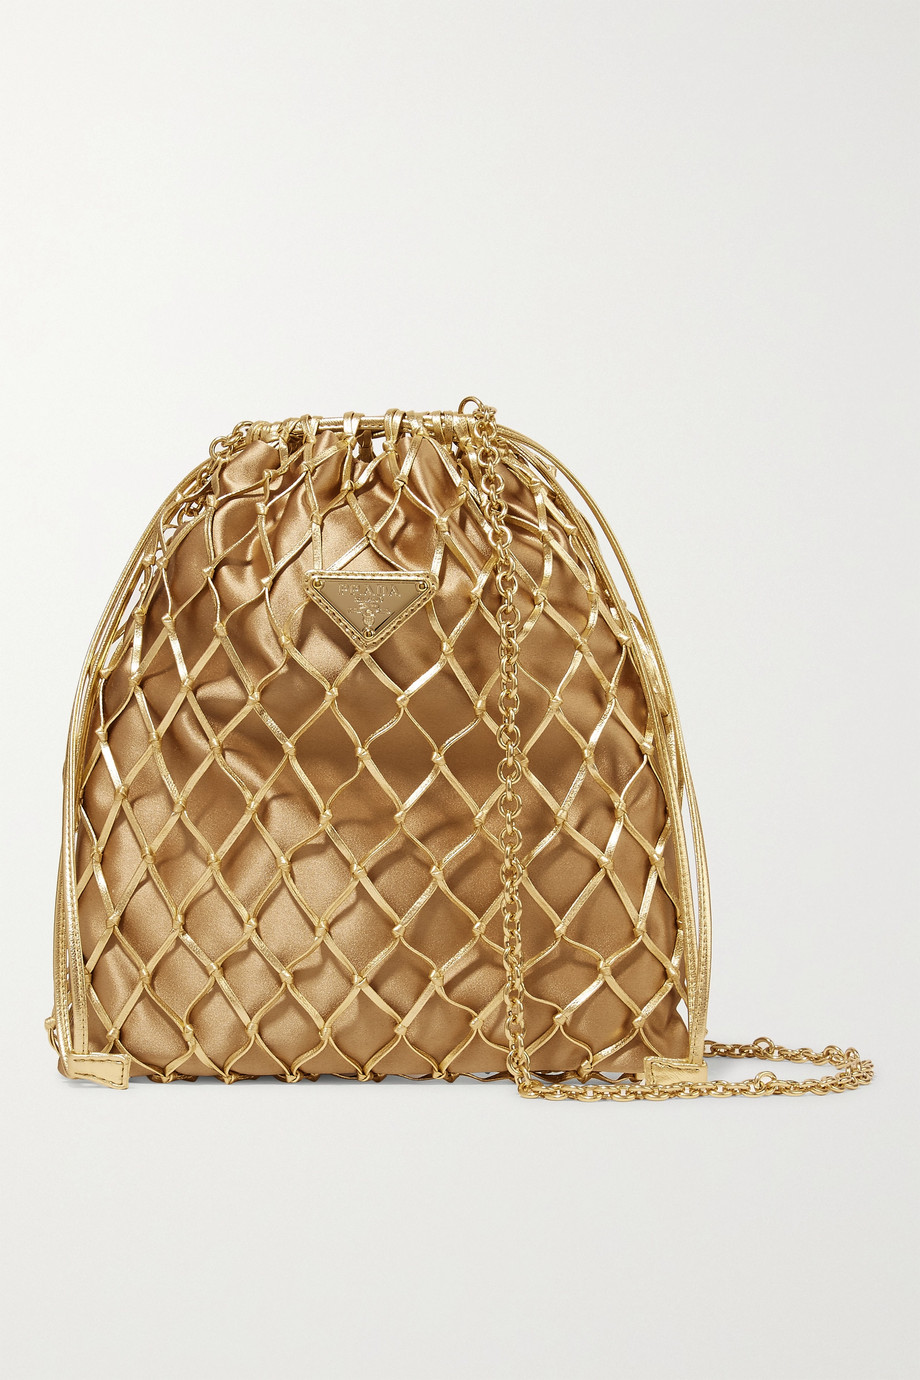 Prada Macramé leather and satin bucket bag